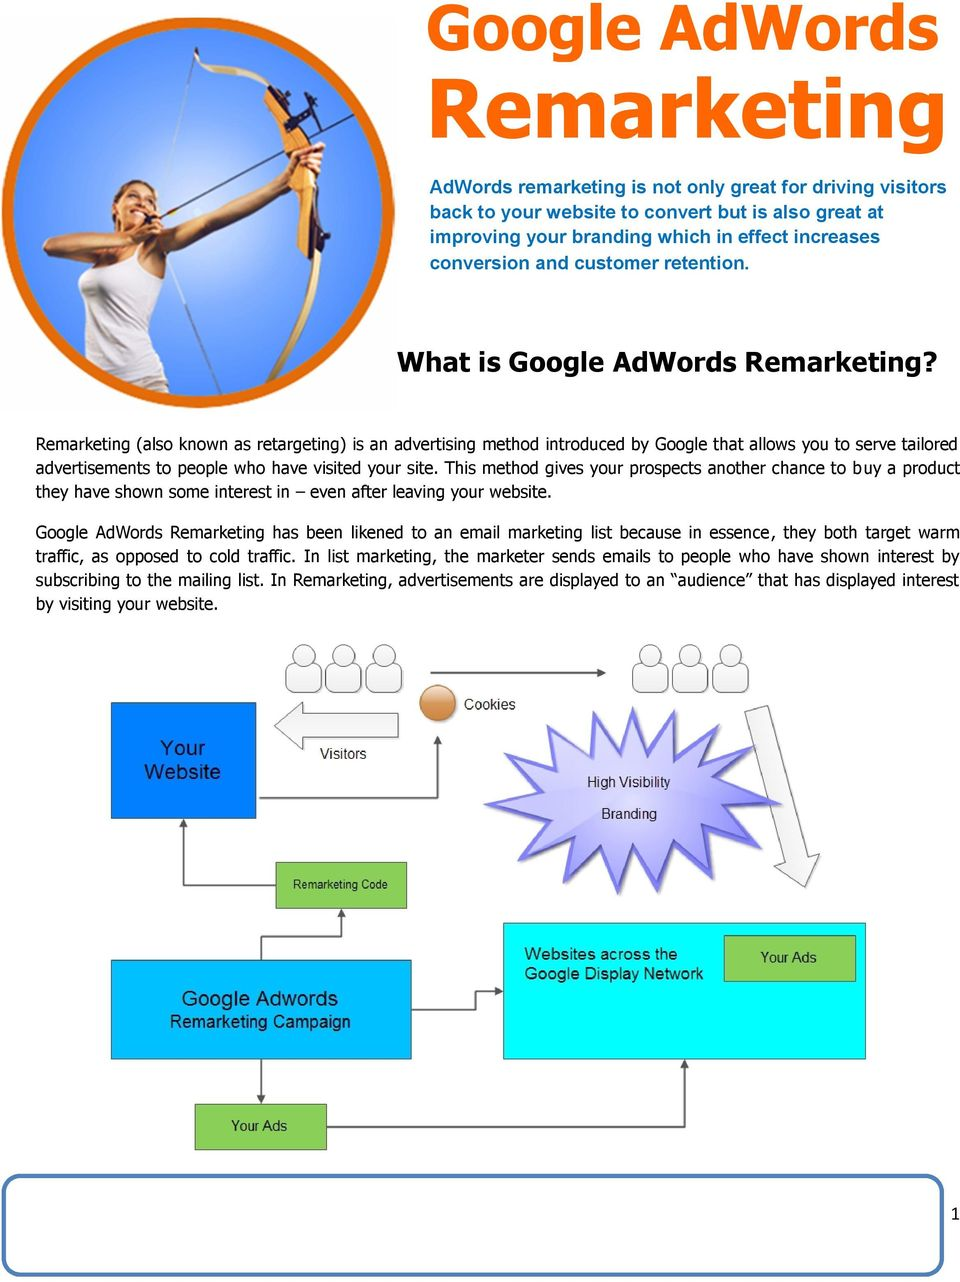 Remarketing (also known as retargeting) is an advertising method introduced by Google that allows you to serve tailored advertisements to people who have visited your site.